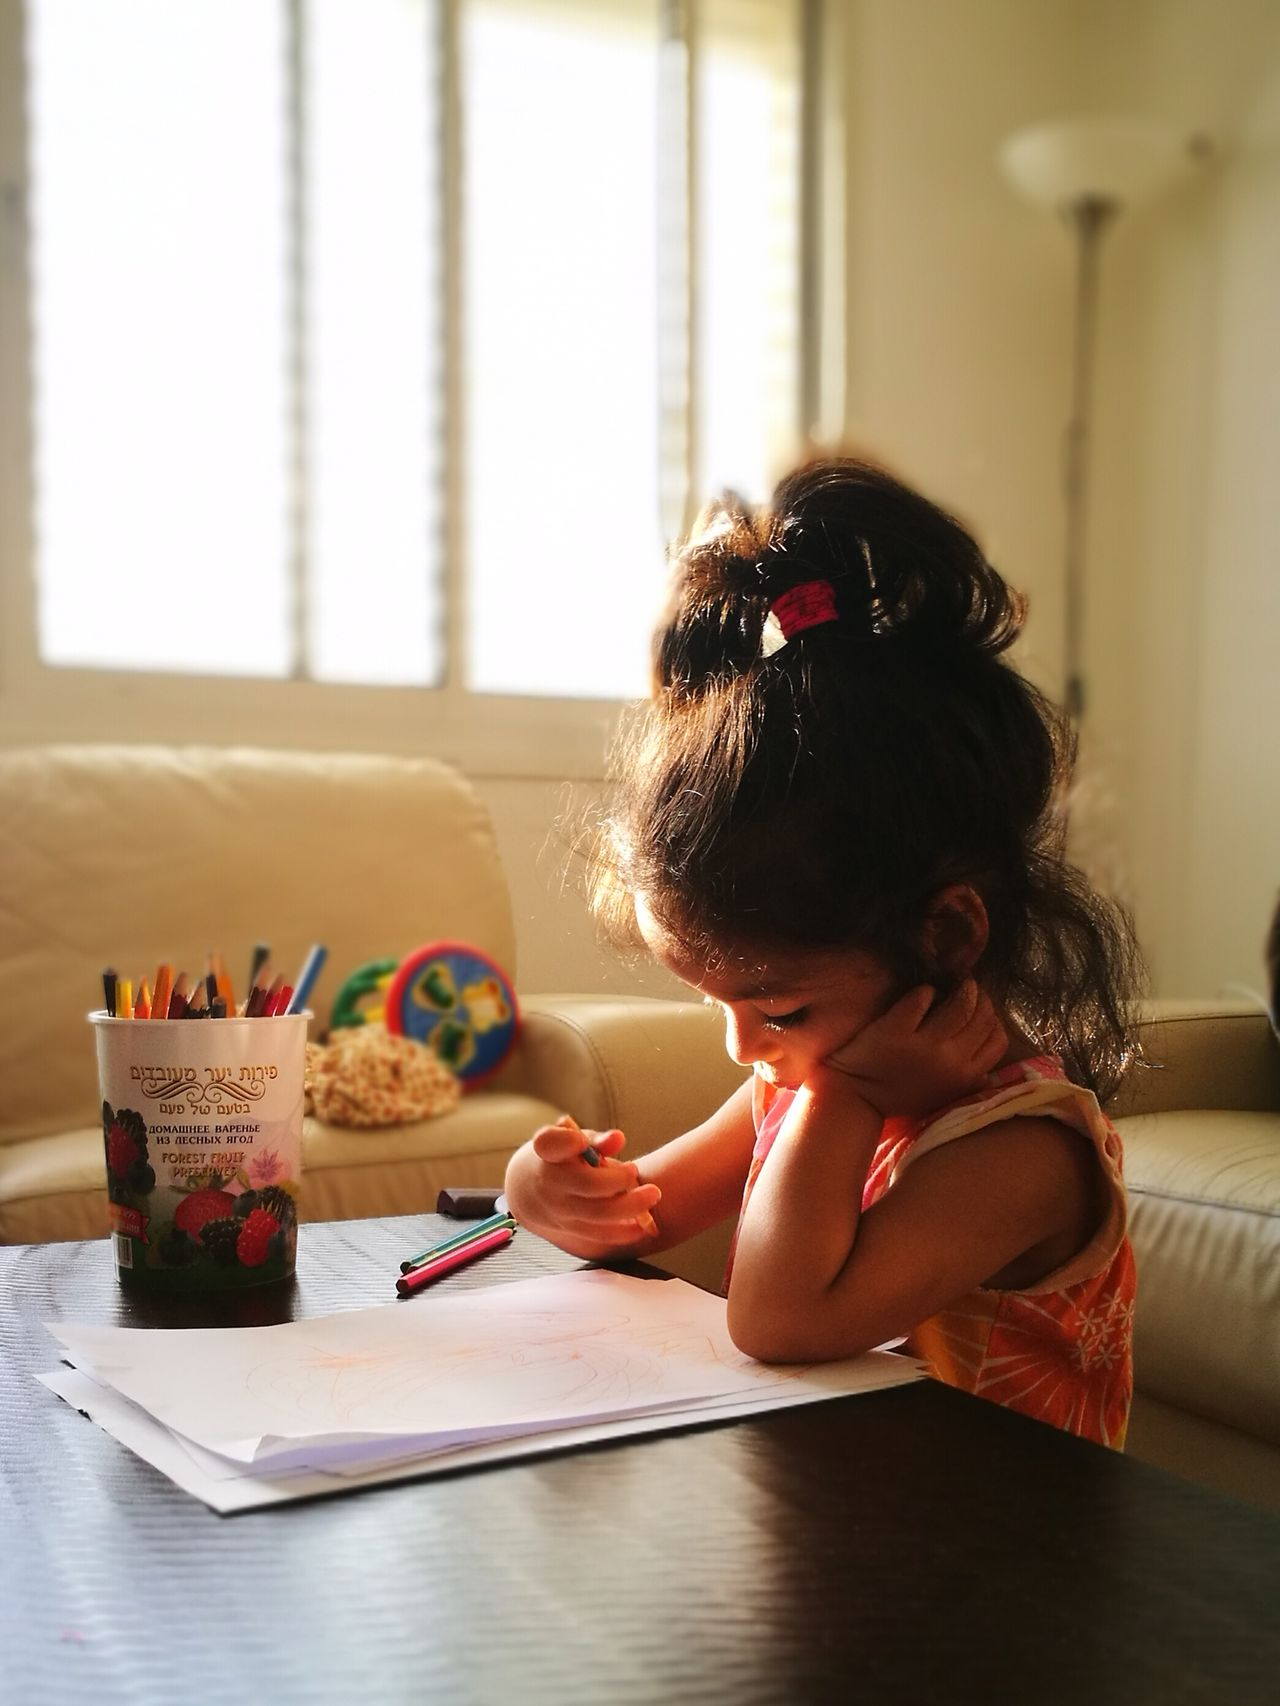 Child Indoors  Childhood Girls Drawing - Activity Learning Children Only Writing Cute One Girl Only One Person Domestic Life People Home Interior Domestic Room Lifestyles Sitting Crayon Portrait Paper